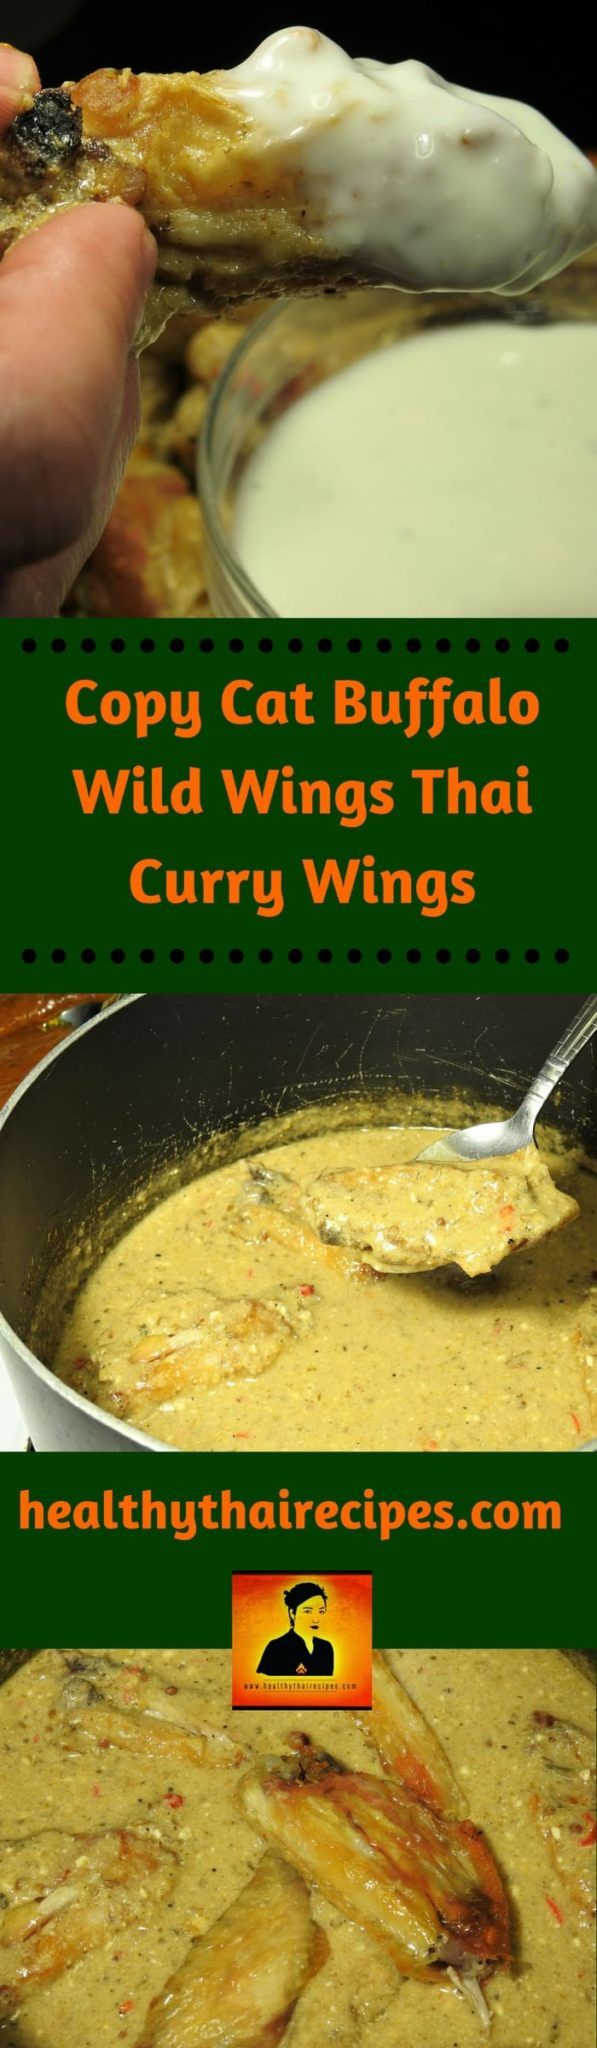 I reverse engineered one of our favorite treats from Buffalo Wild Wings. The Thai curry wings are delicious and a fun adventure to recreate. The way I went about it was not what you might expect.